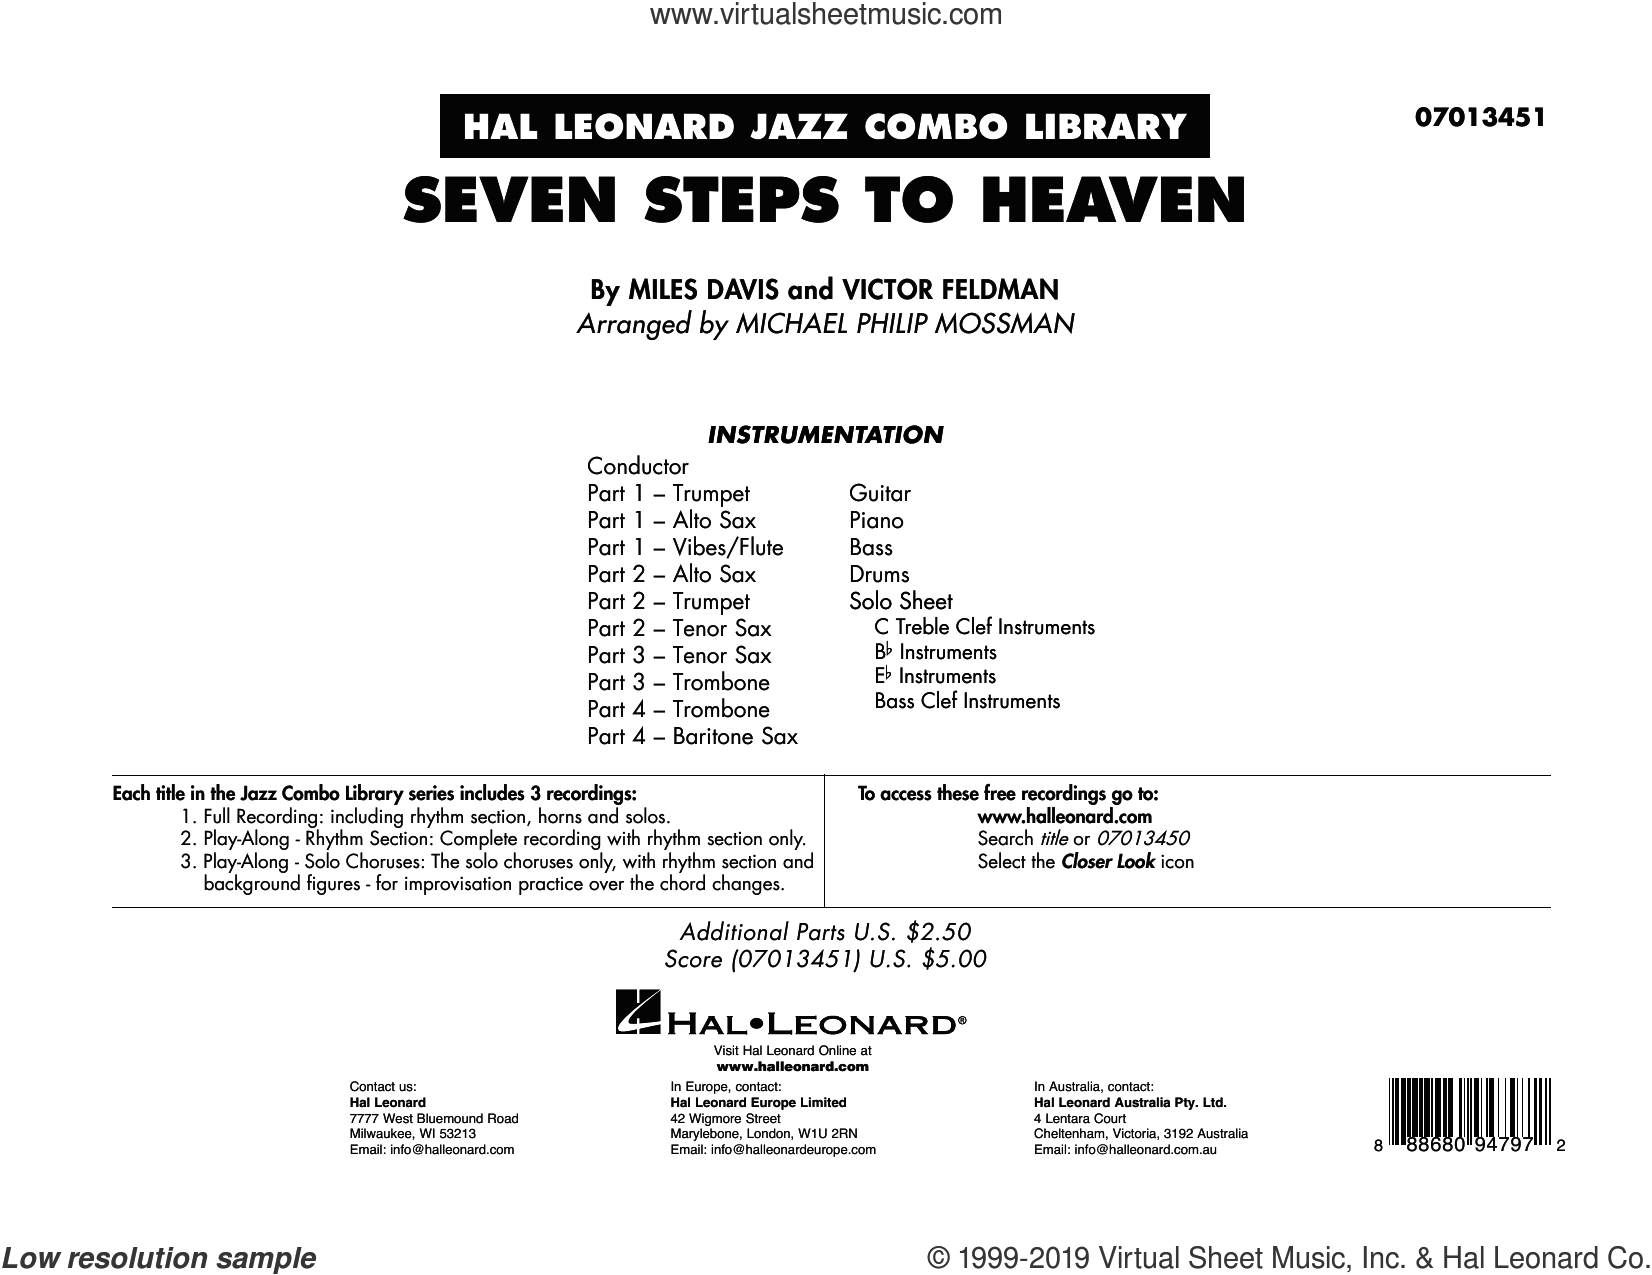 Seven Steps to Heaven (arr. Michael Philip Mossman) (COMPLETE) sheet music for jazz band by Miles Davis, Michael Philip Mossman and Victor Feldman, intermediate skill level